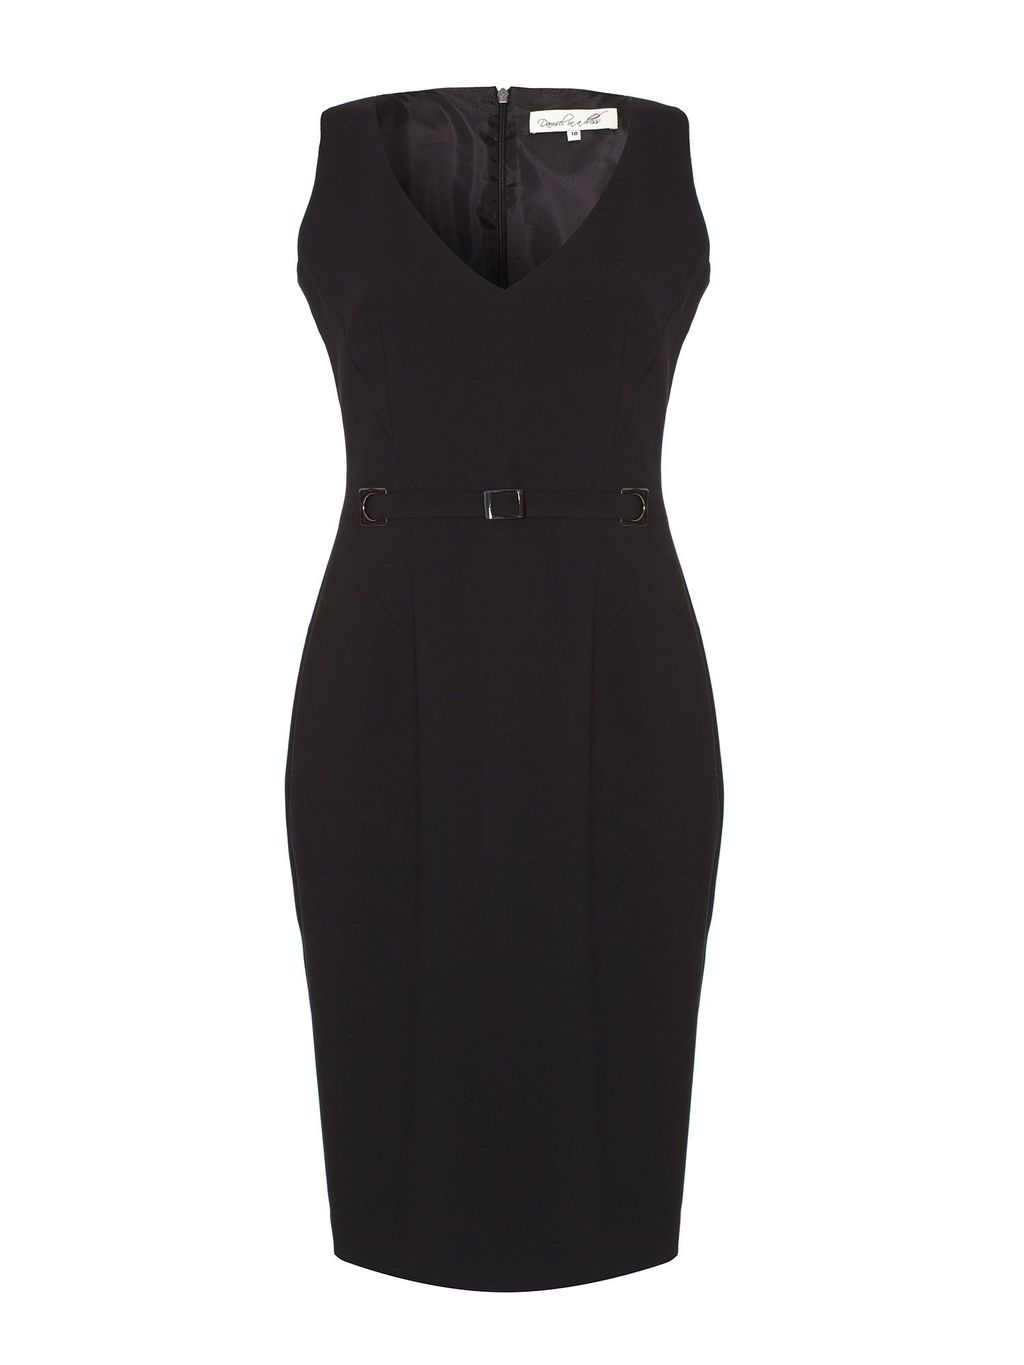 Amber Noir Dress, Black - style: shift; neckline: v-neck; fit: tailored/fitted; pattern: plain; sleeve style: sleeveless; waist detail: belted waist/tie at waist/drawstring; predominant colour: black; occasions: casual, evening, work, occasion; length: just above the knee; fibres: polyester/polyamide - 100%; sleeve length: sleeveless; texture group: woven light midweight; trends: 1940's hitchcock heroines; season: s/s 2013